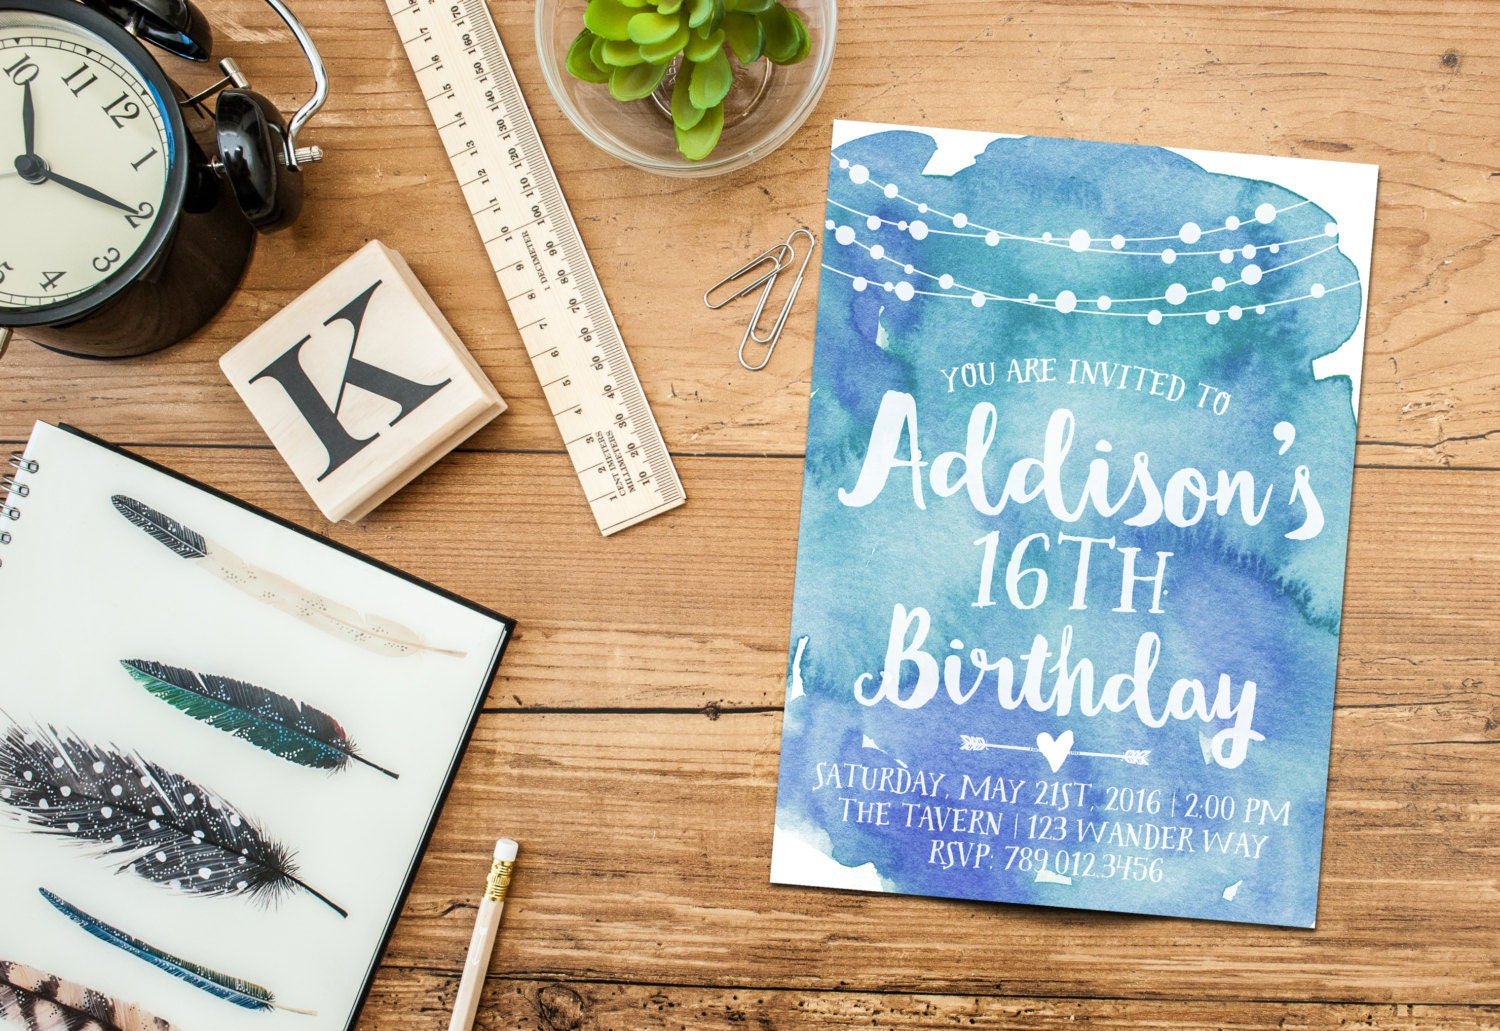 18Th Party Invitations is awesome invitation layout